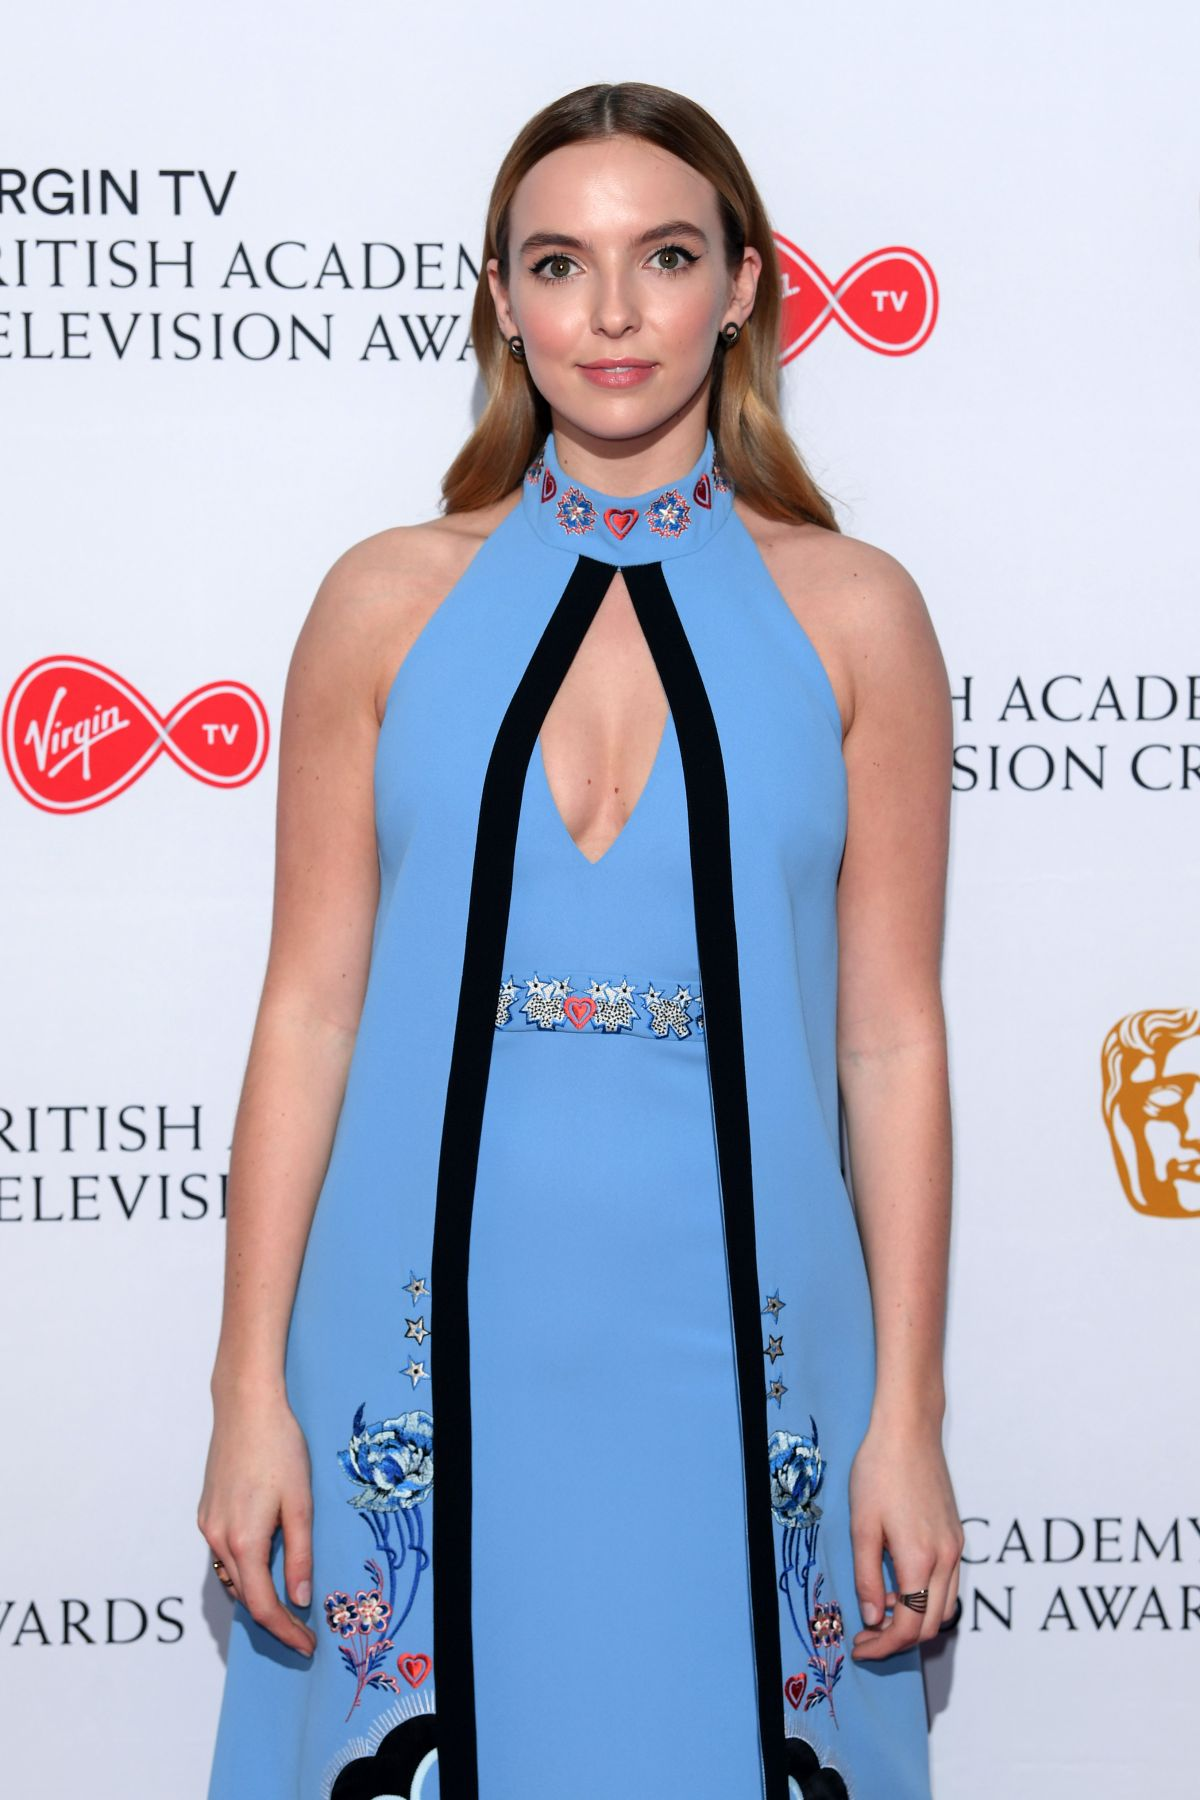 JODIE COMER at British Academy Television and Craft Awards Nominees Party in London 04/20/2017   jodie-comer-at-british-academy-television-and-craft-awards-nominees-party-in-london-04-20-2017_1